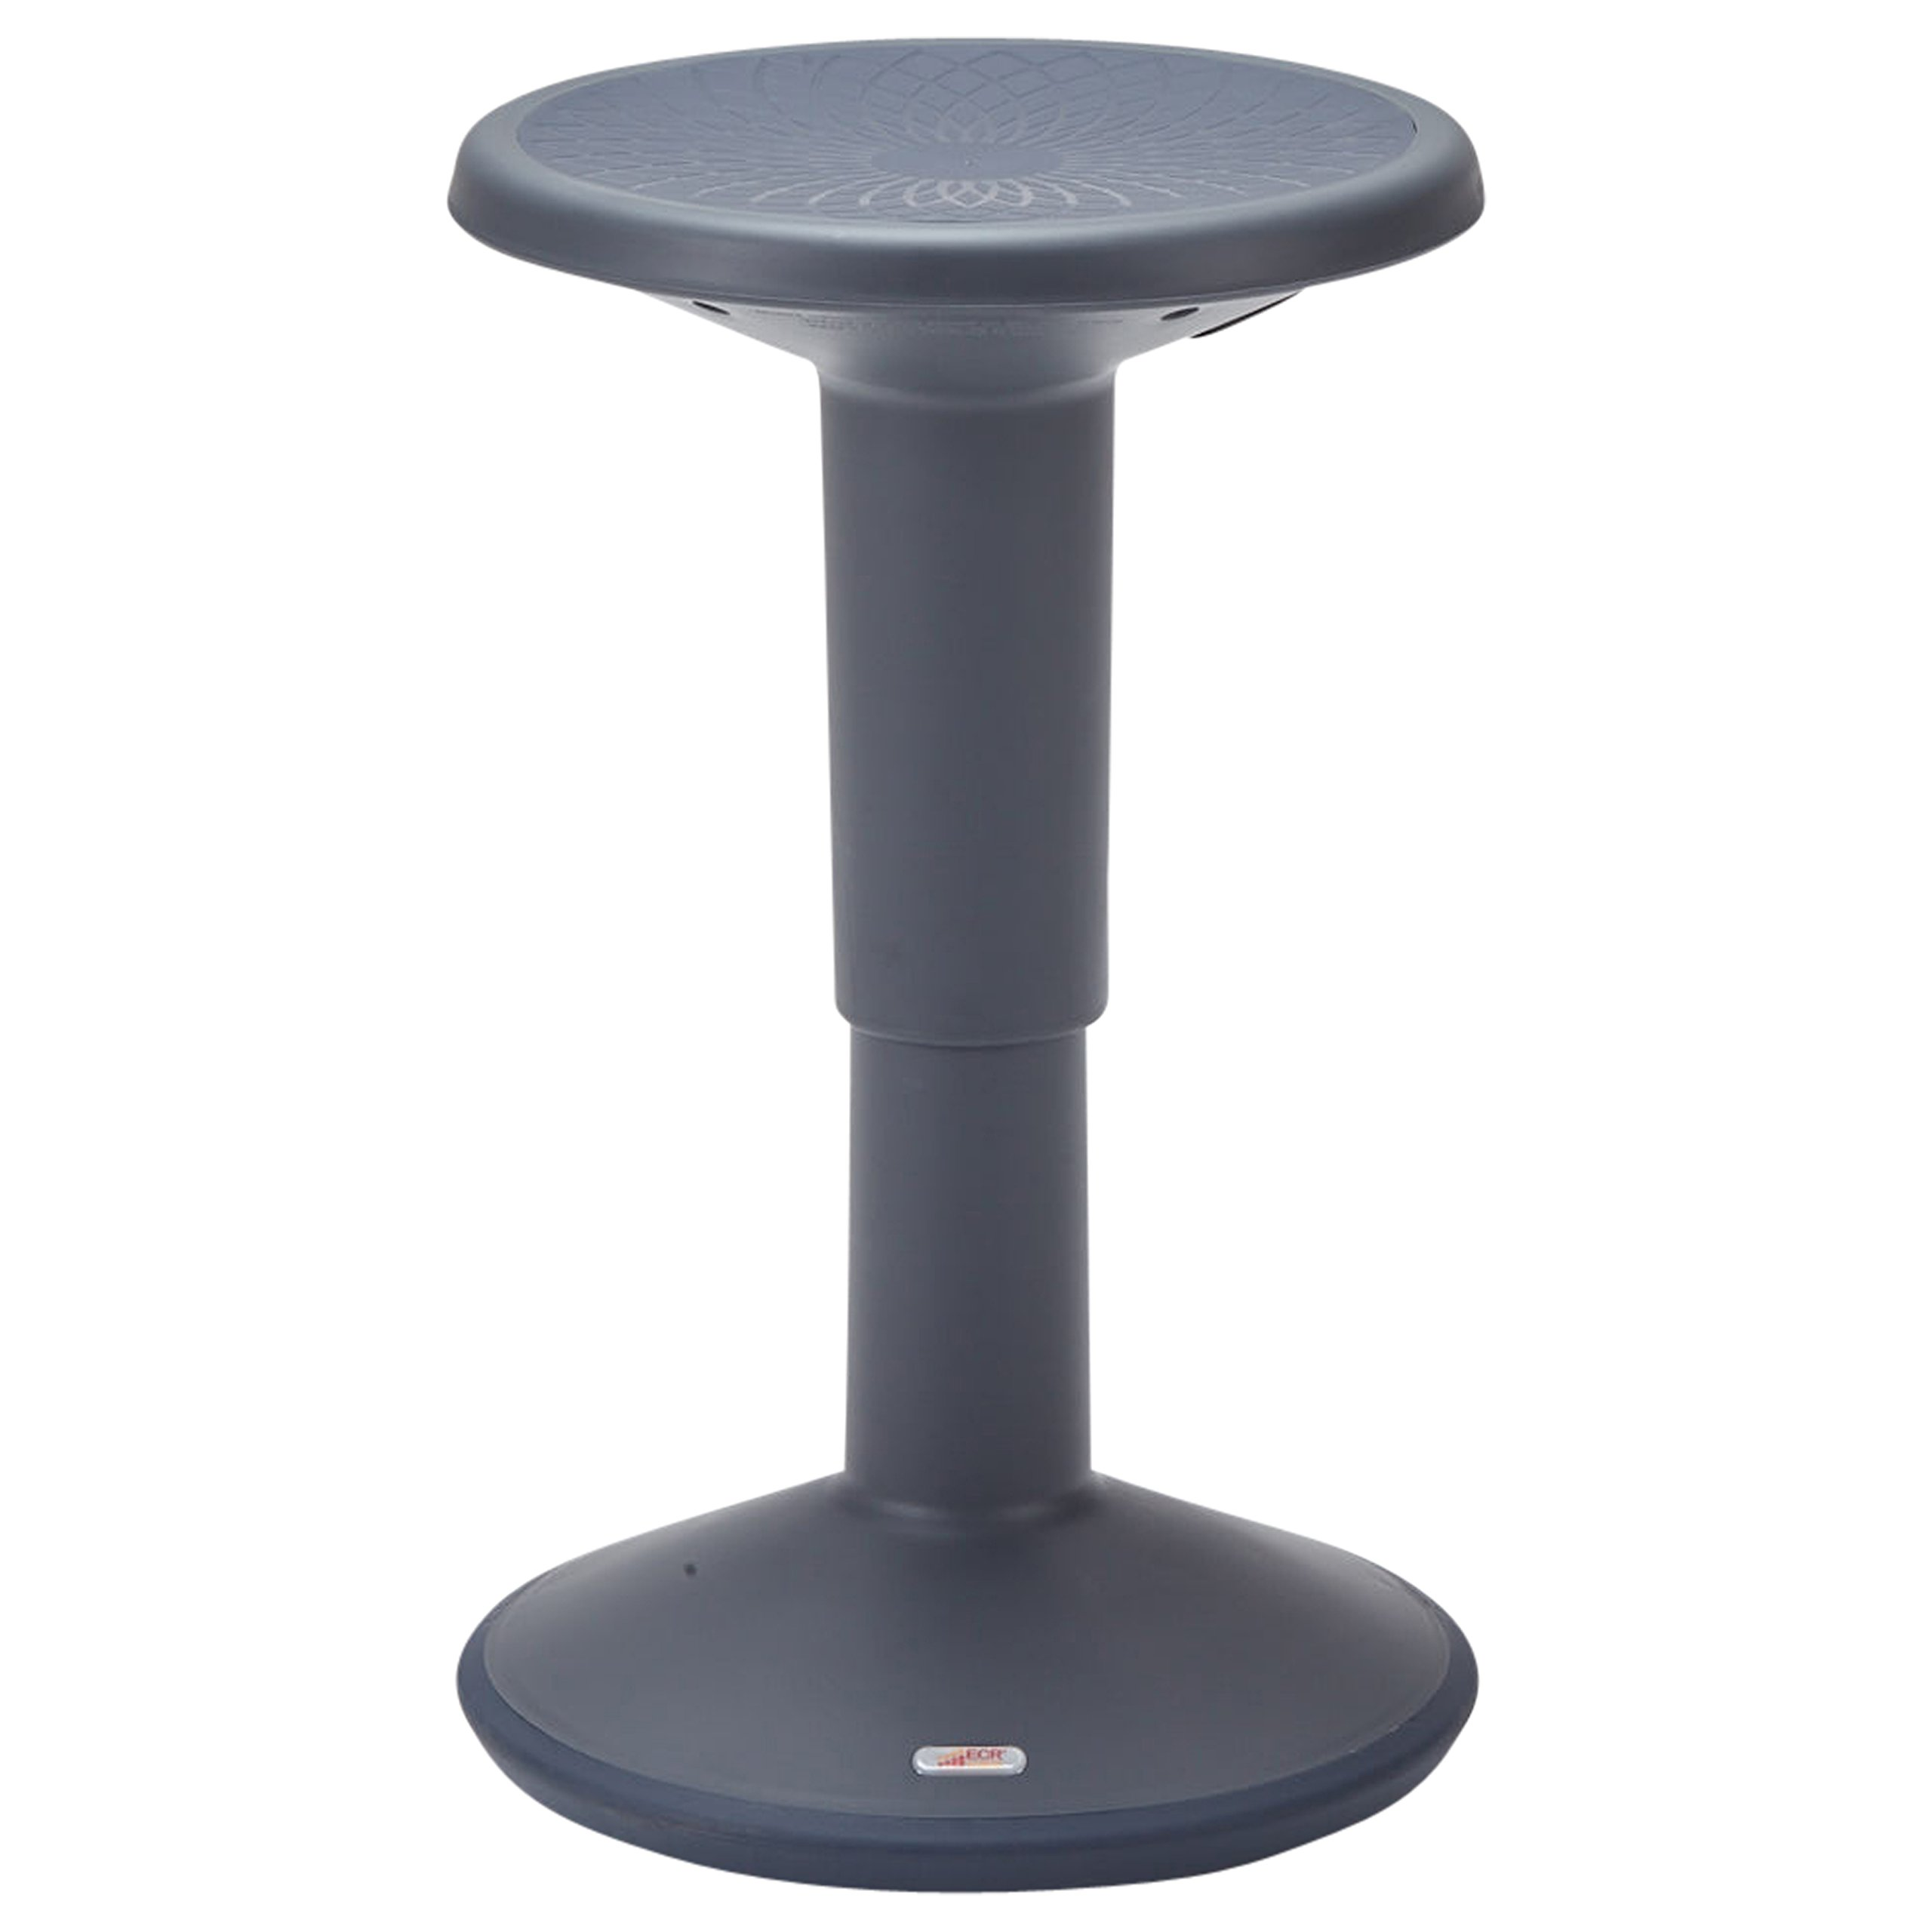 ECR4Kids SitWell Height-Adjustable Wobble Stool - Active Flexible Seating Chair for Kids and Adults - School and Office, Grey